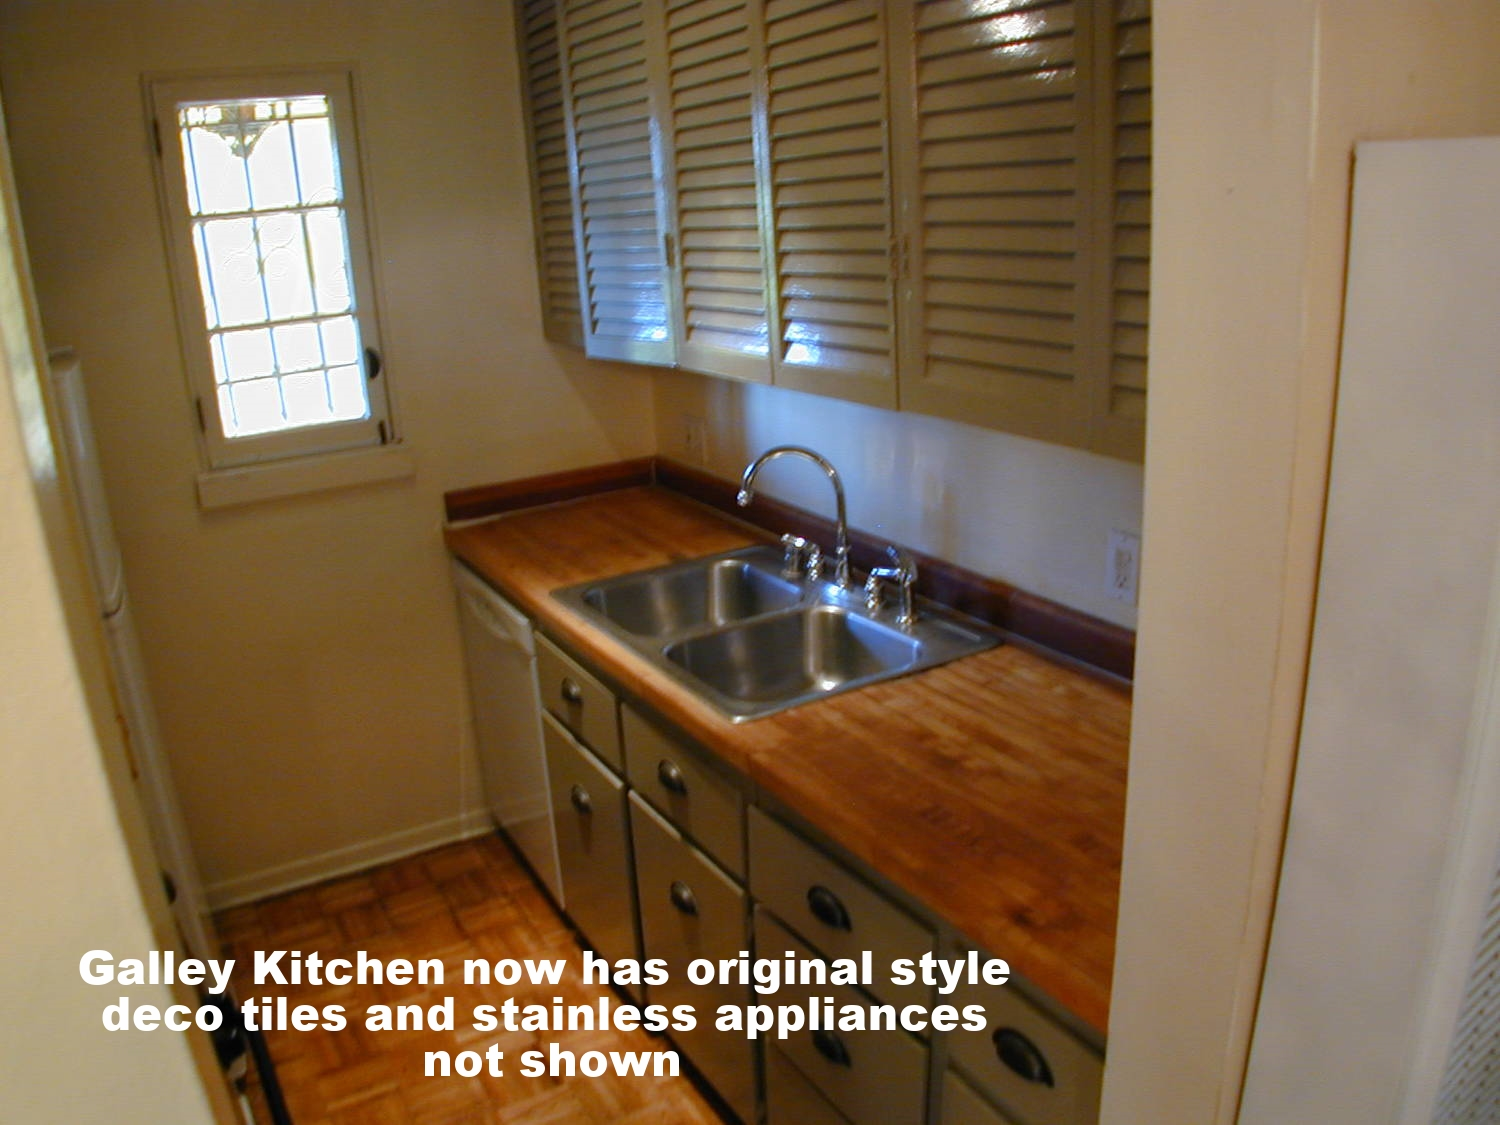 Galley kitchen, countertop shown has been upgraded from shown